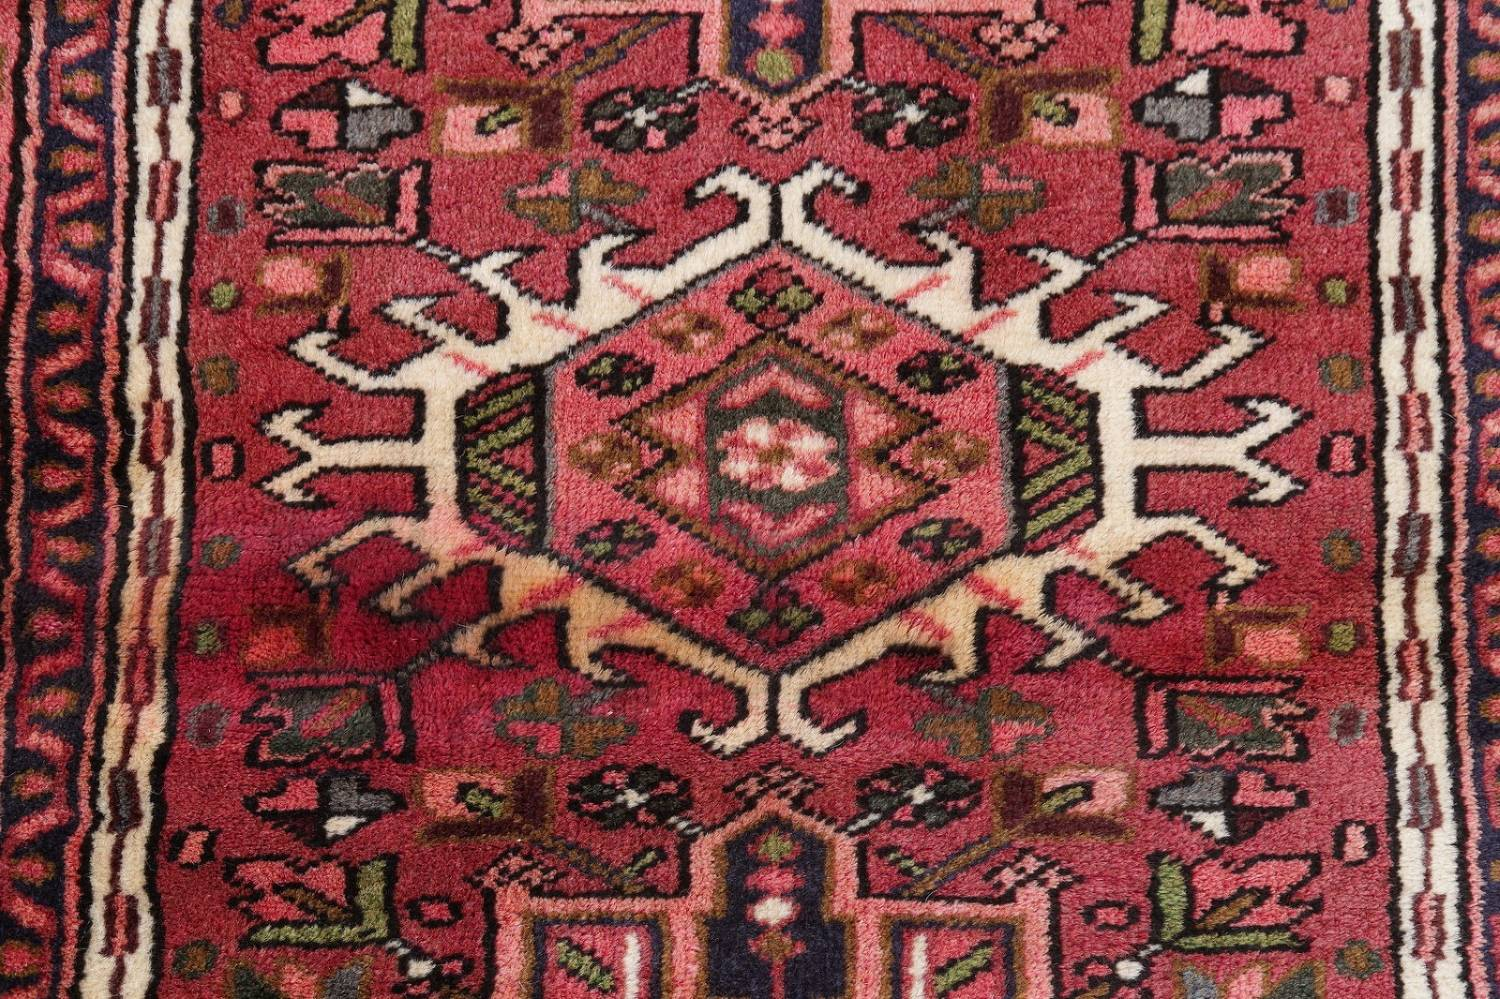 Geometric Red Gharajeh Persian Hand-Knotted Runner Rug Wool 3x10 image 8